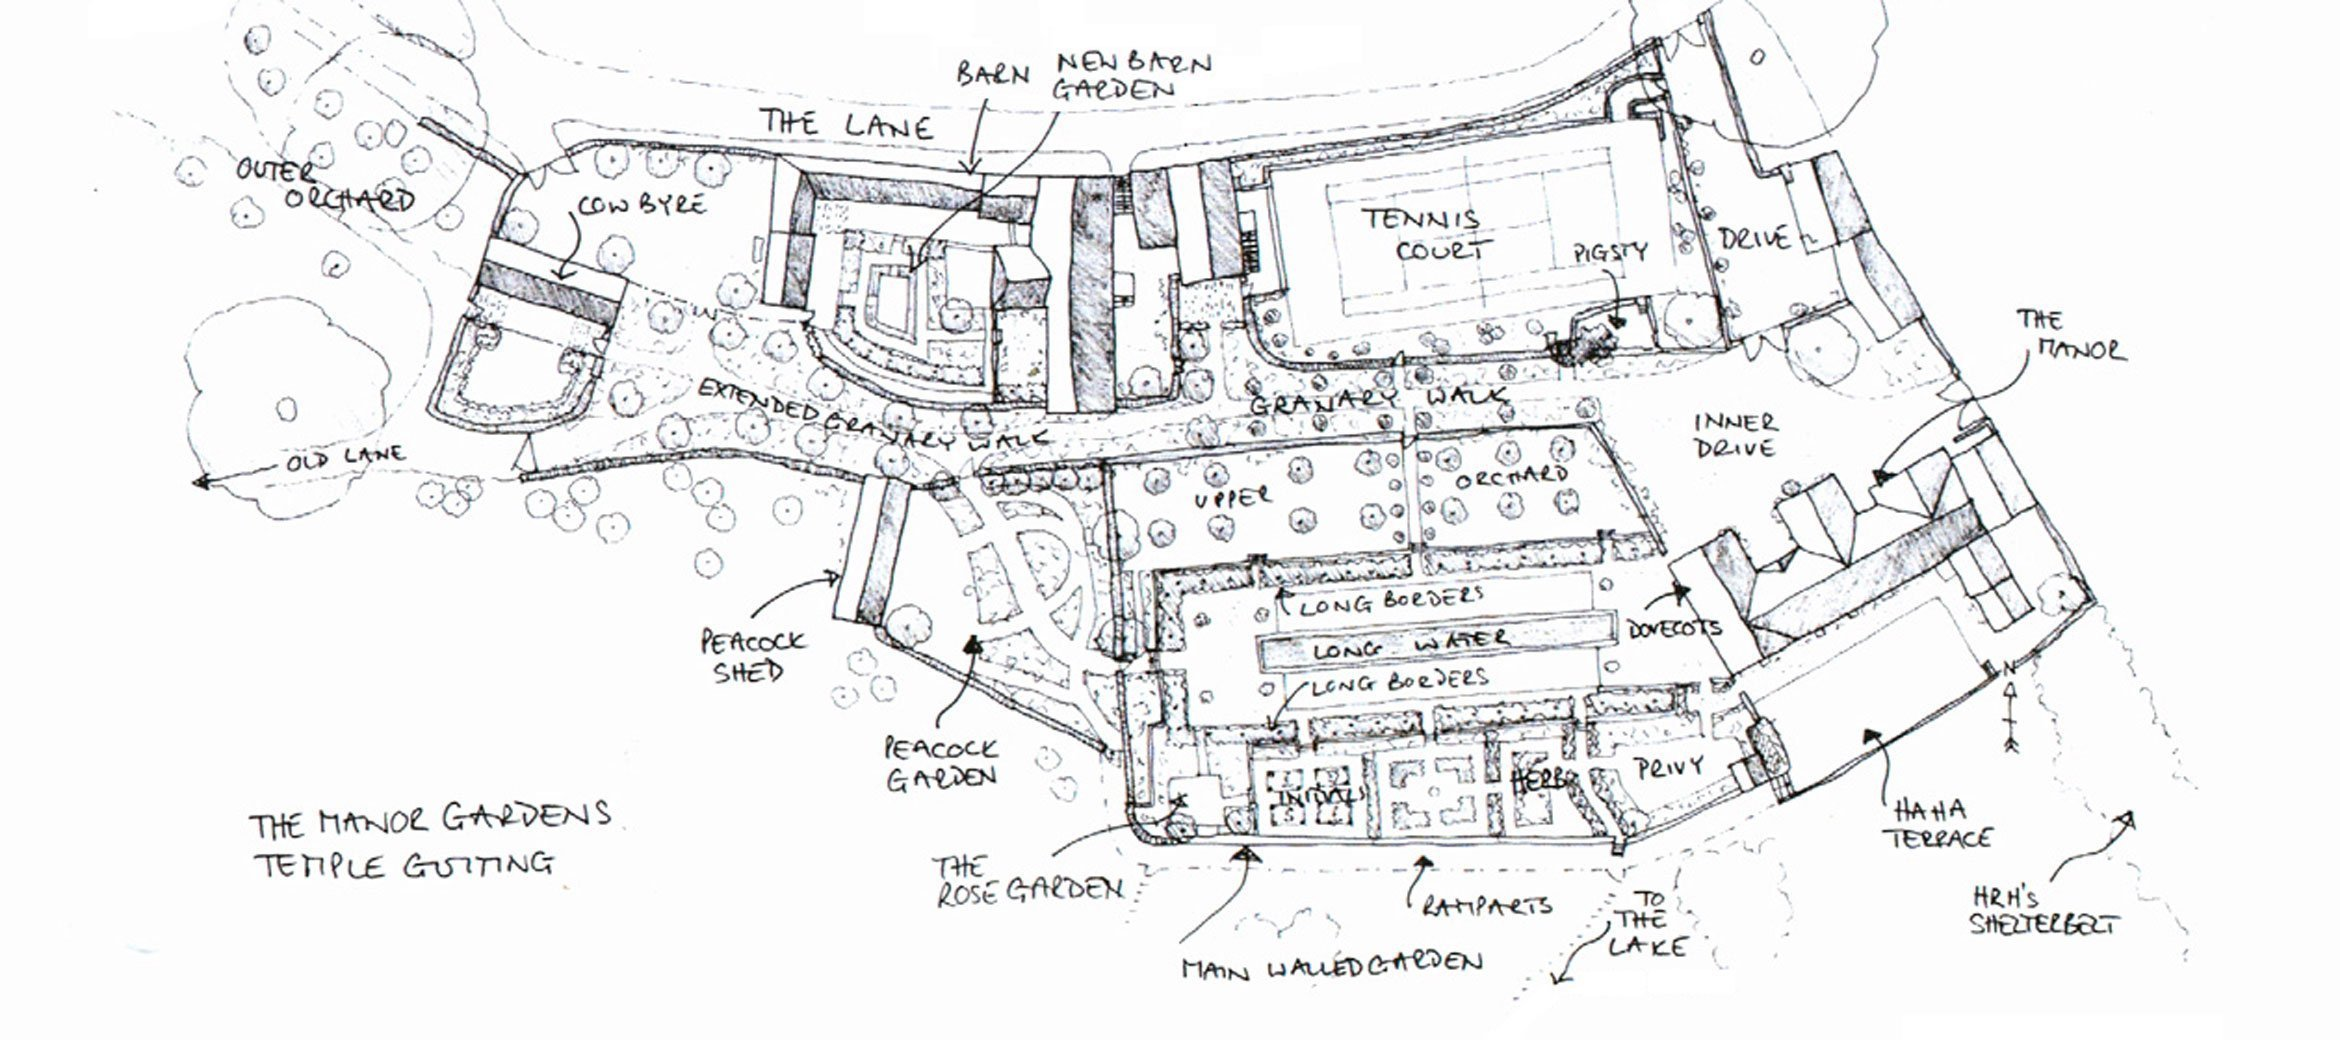 View the floorplan of Temple Guiting Manor & Peacock Shed